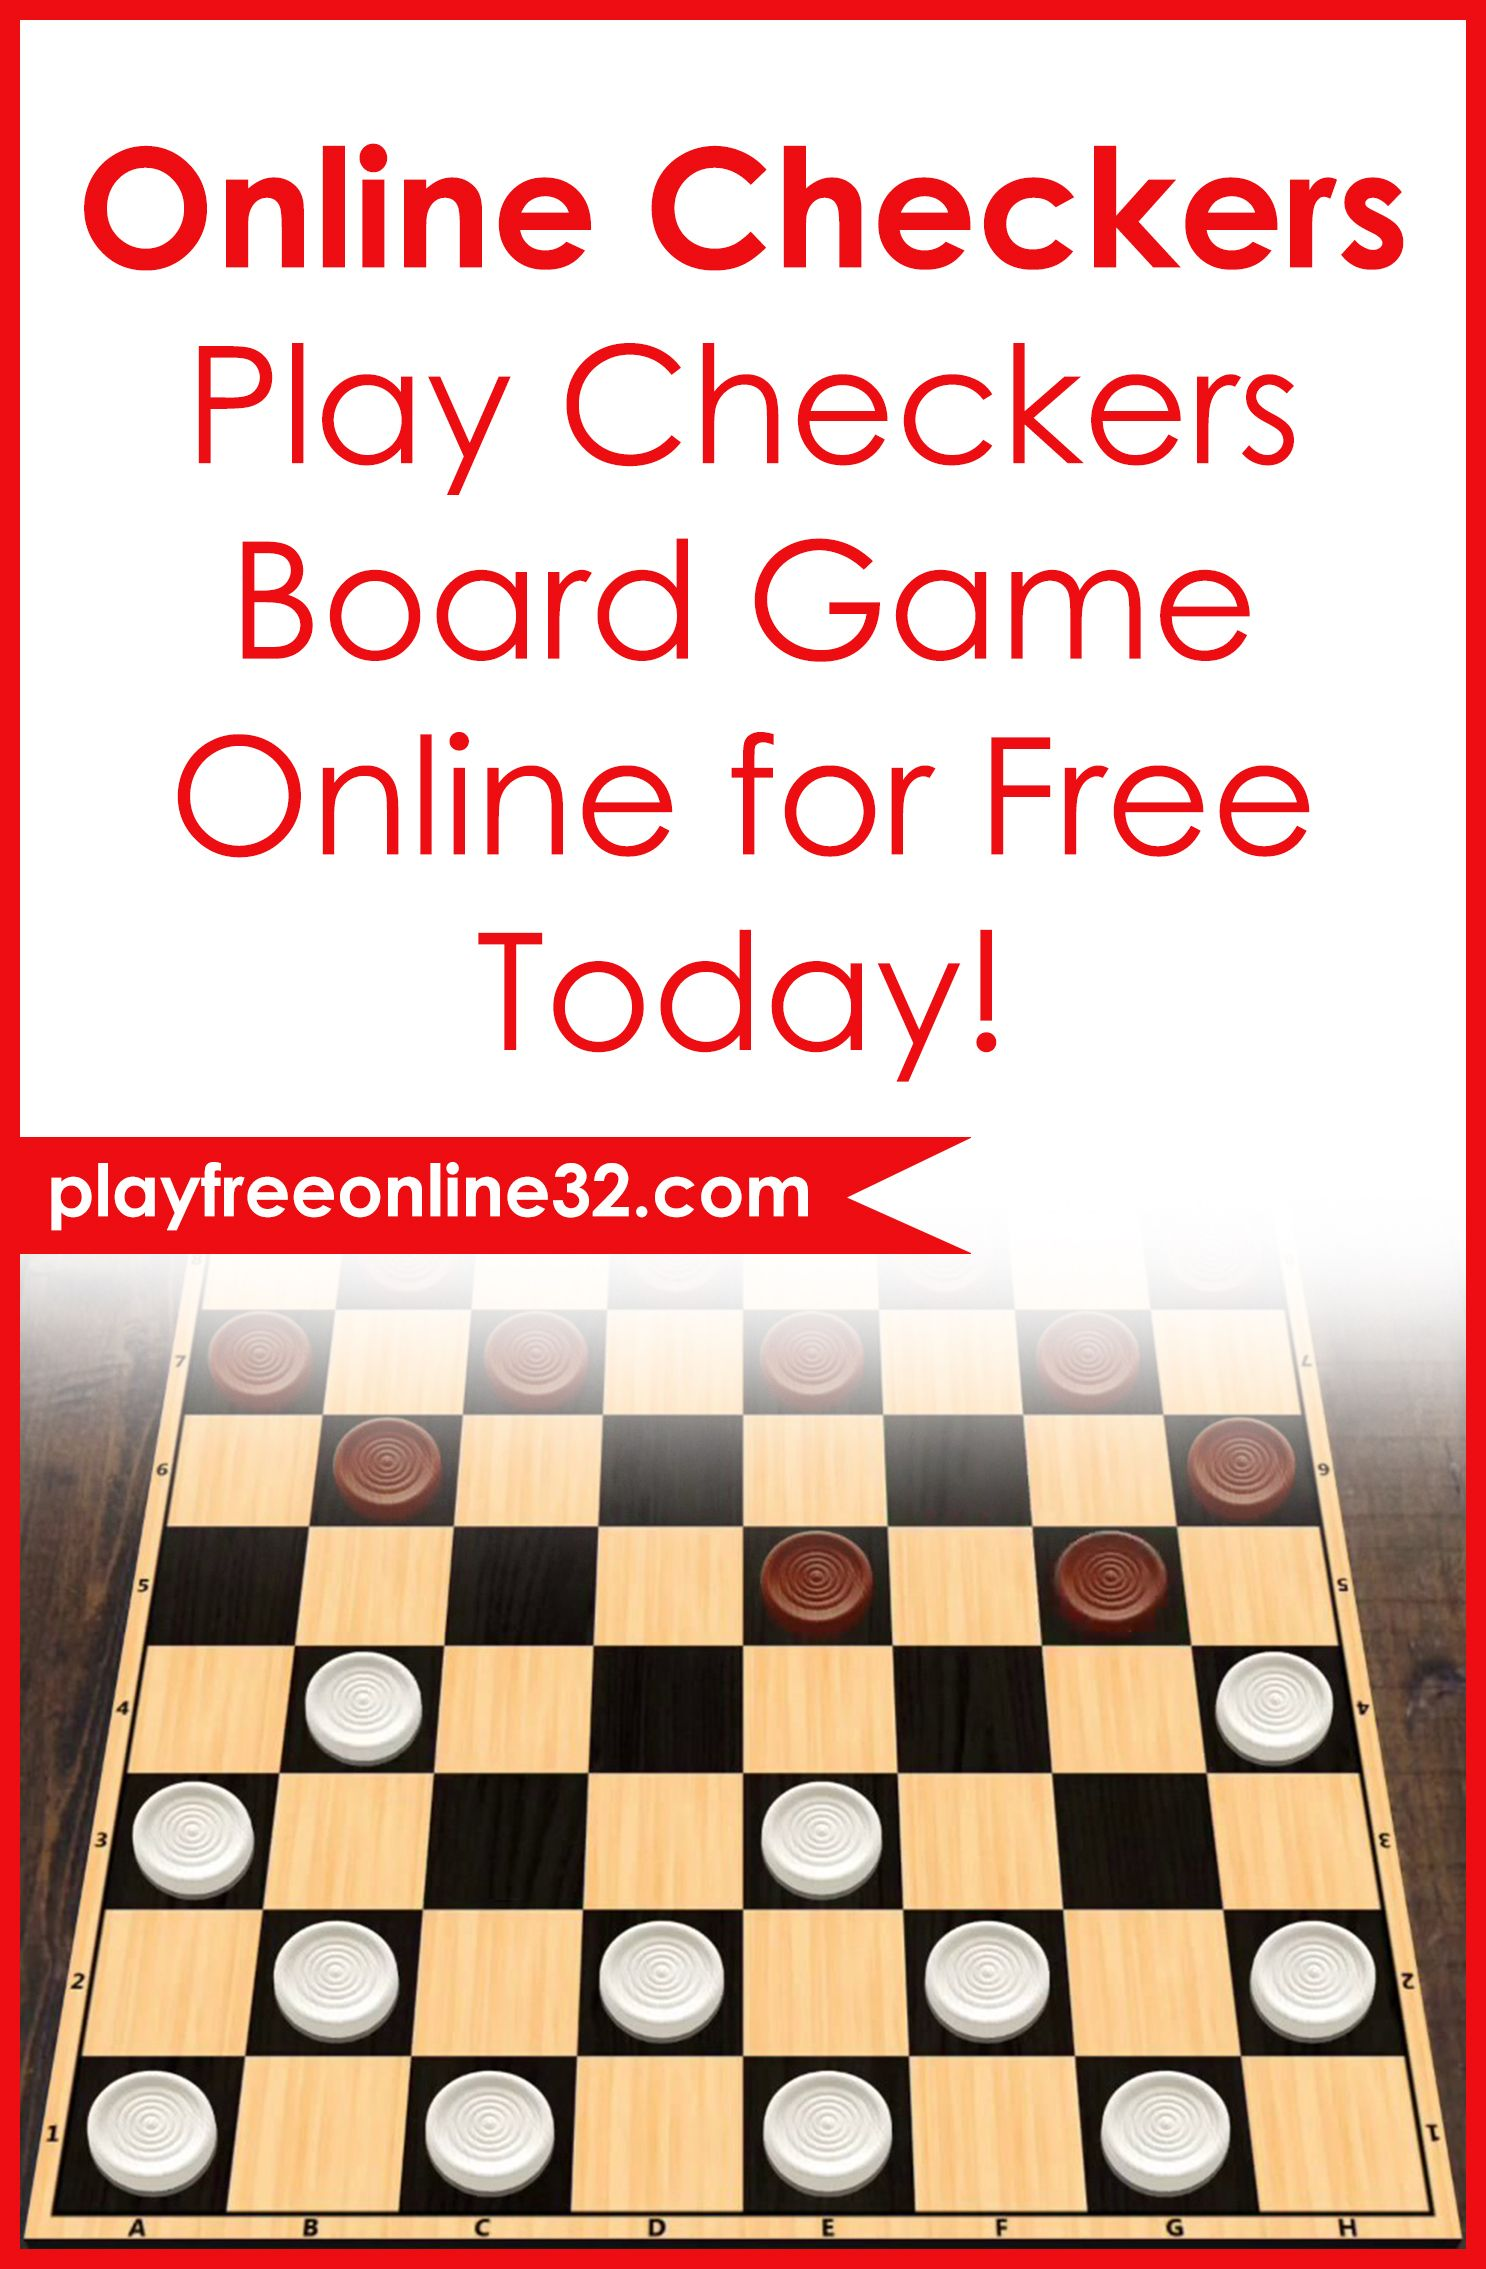 Checkers play checkers game online for free unlimited